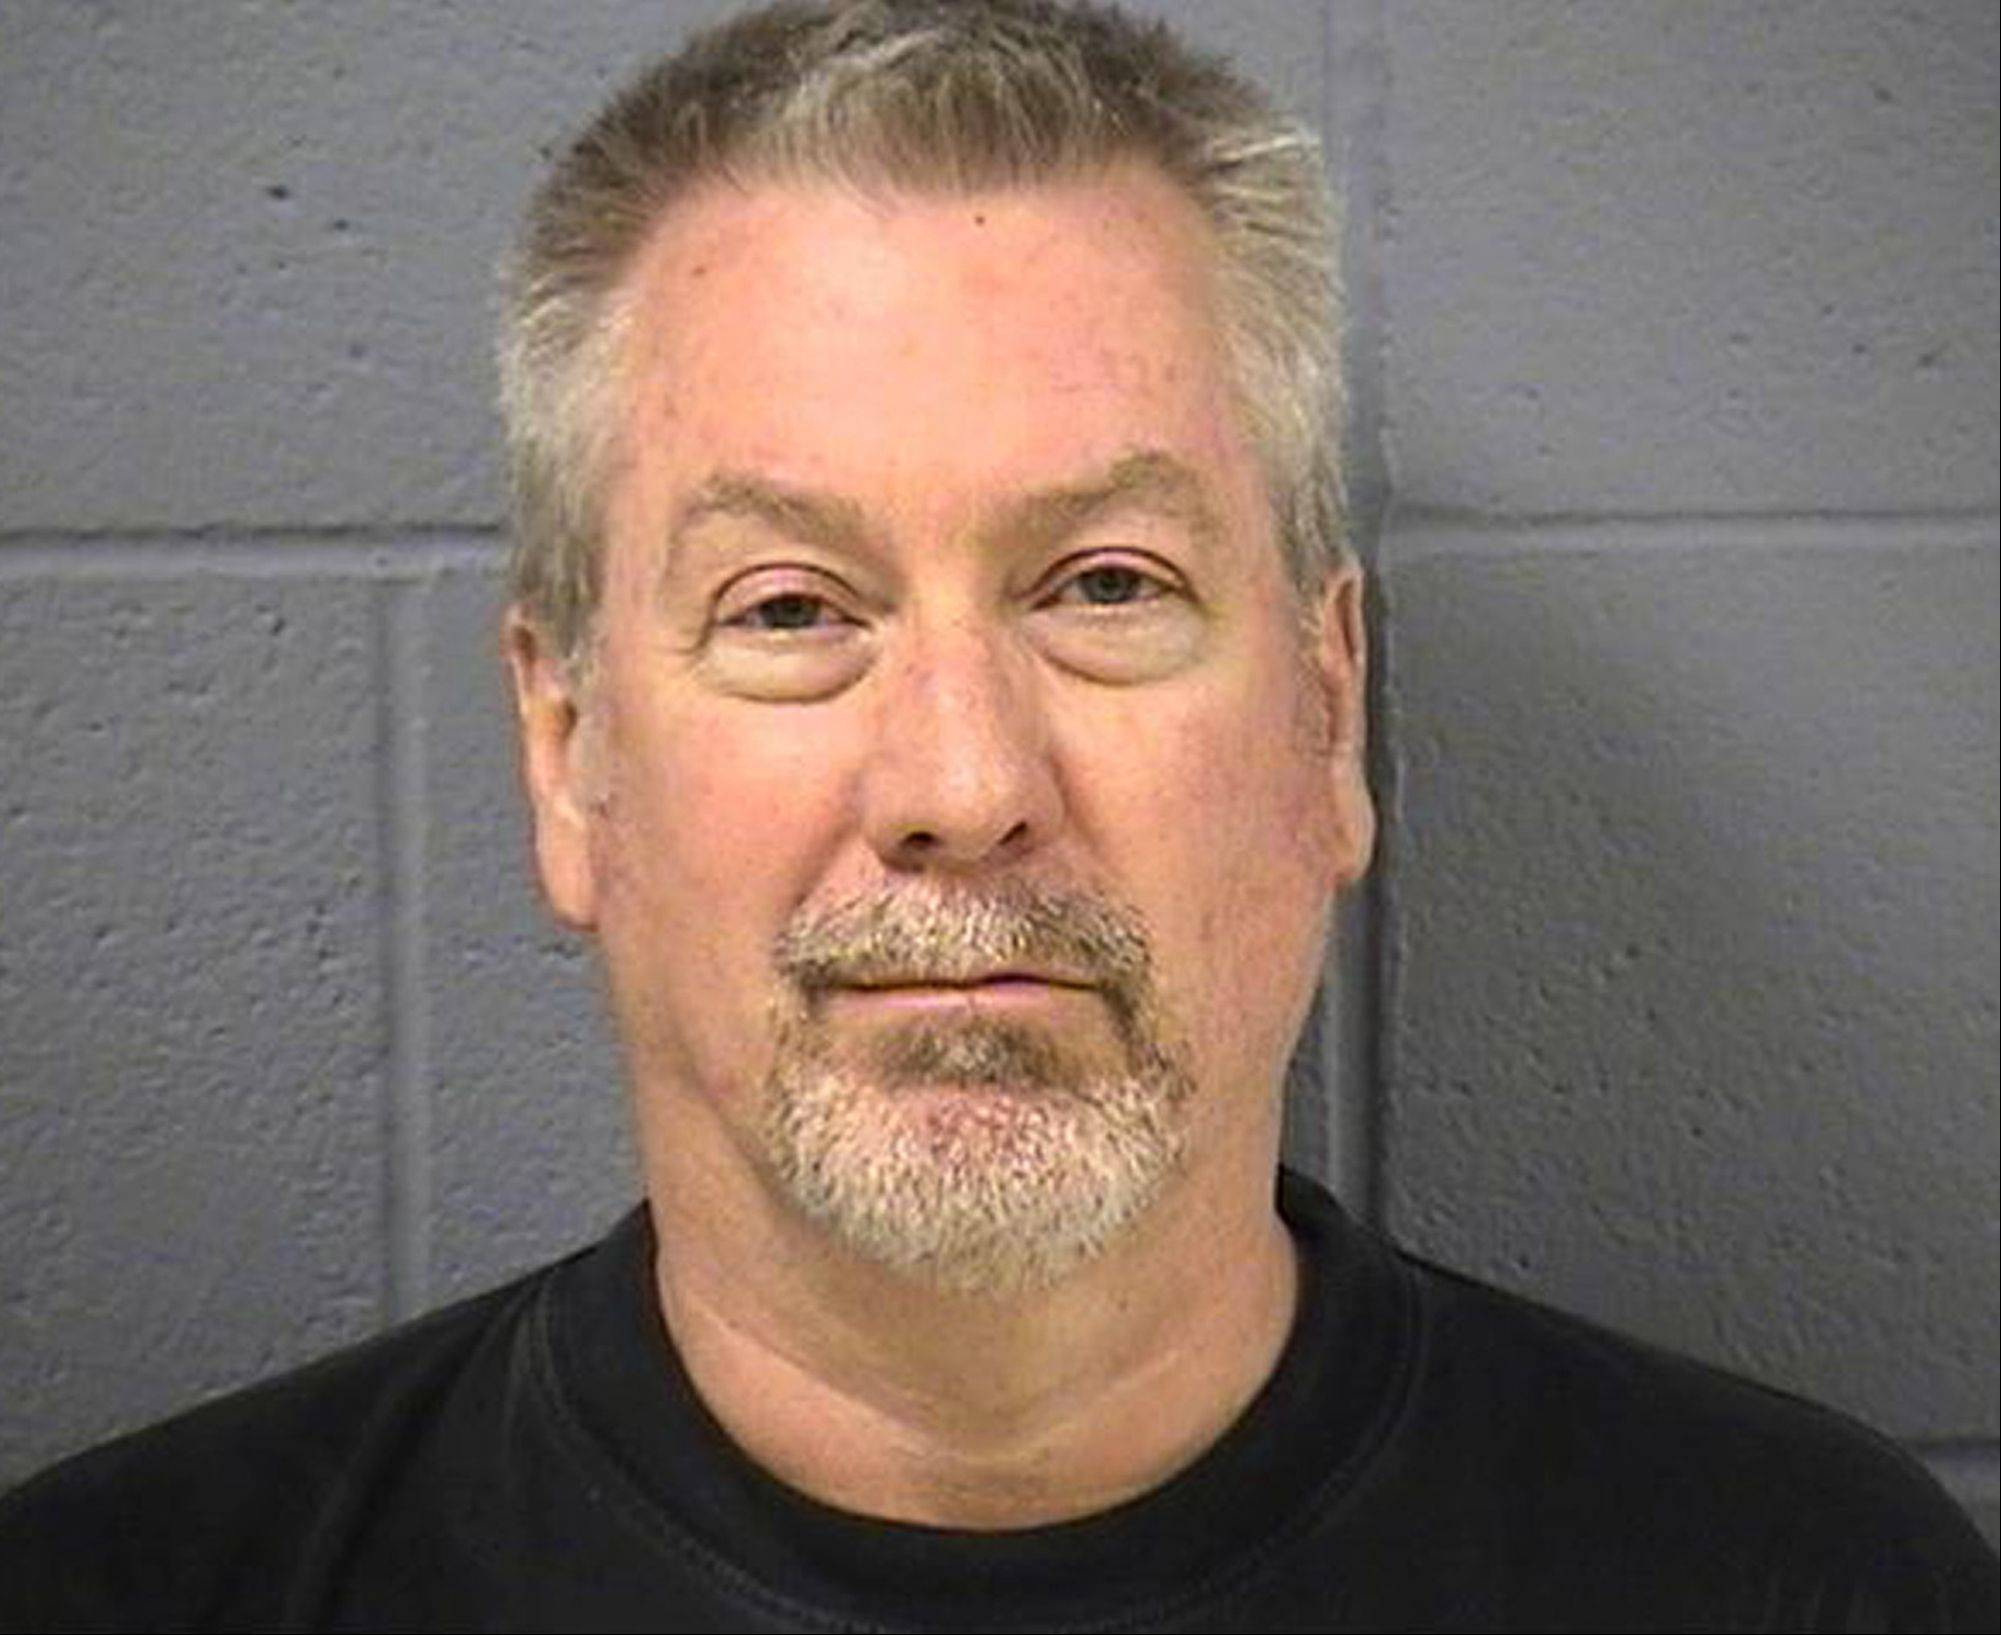 Drew Peterson is charged with first-degree murder in Kathleeen Savio's drowning death.